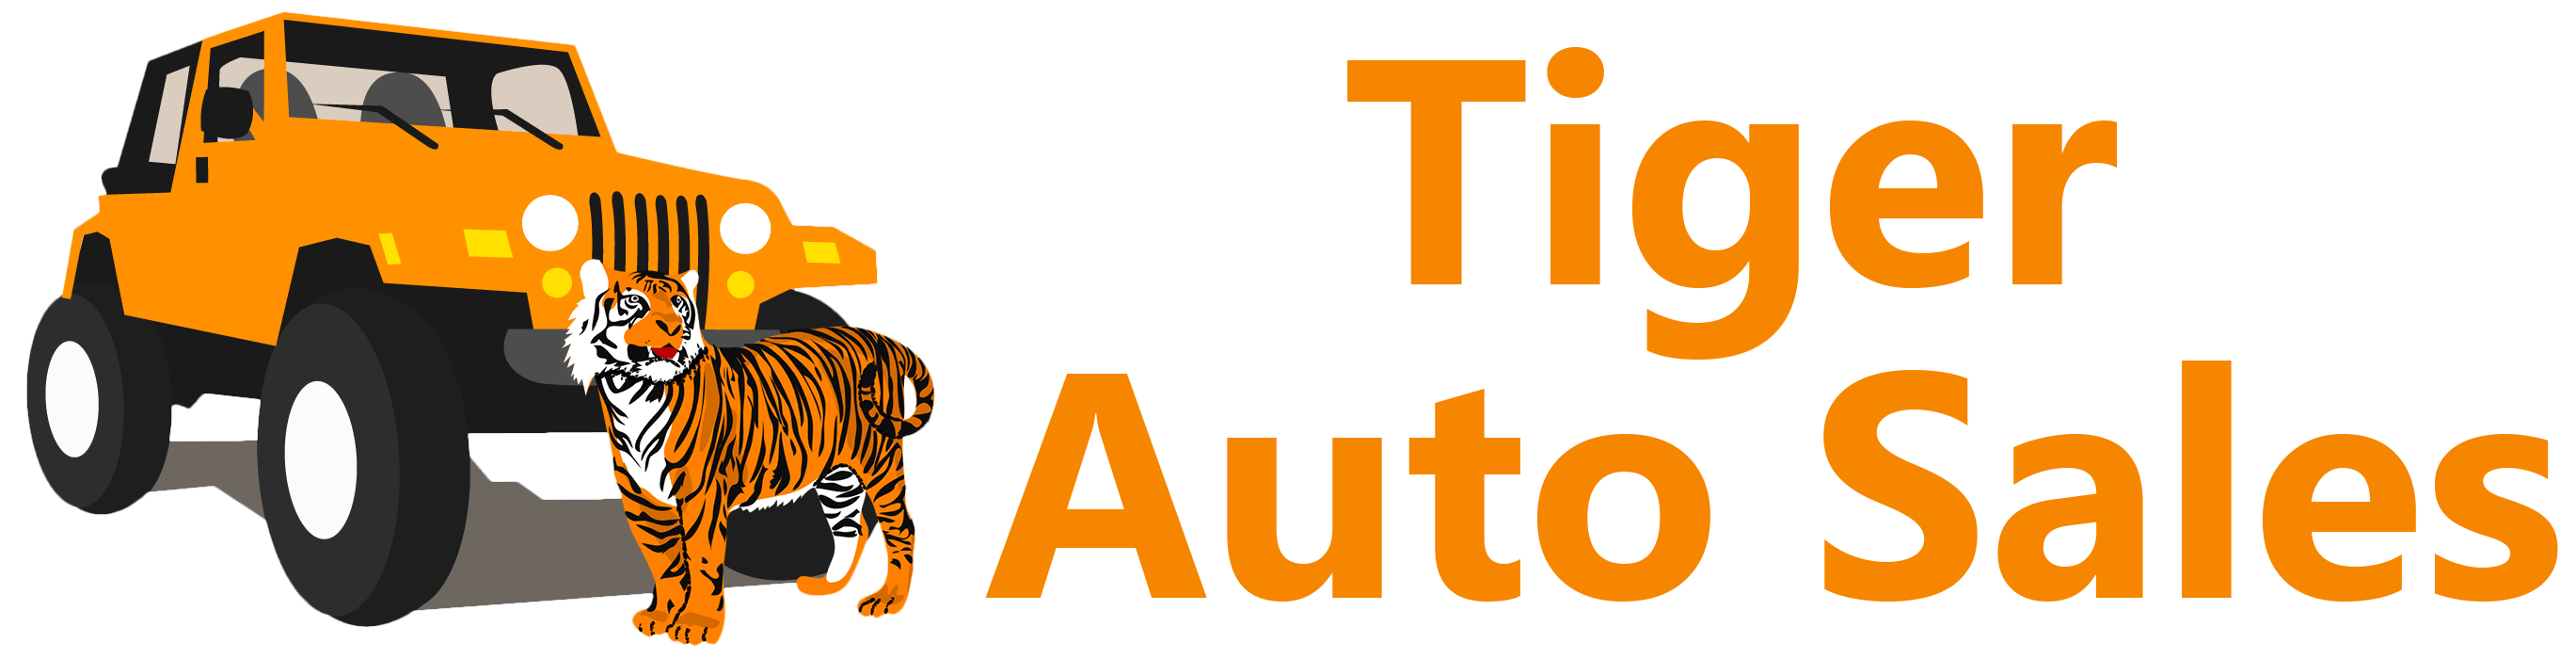 Tiger Auto Sales Ltd.